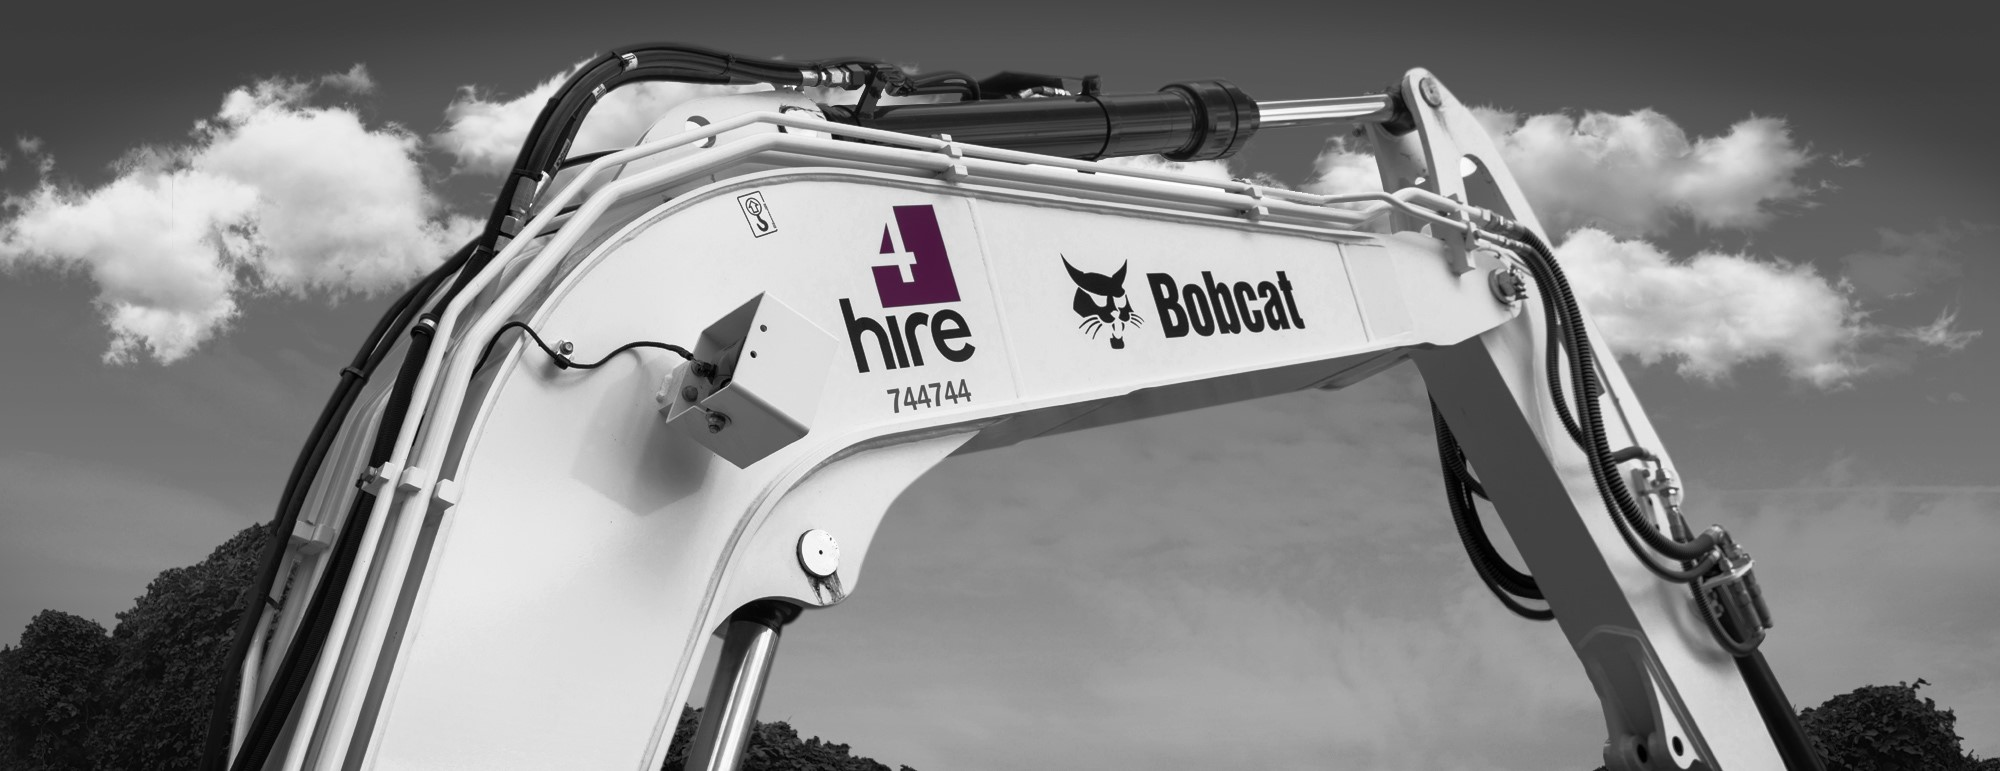 A guide to hiring tools, plant, machinery and vehicles in the Channel Islands Image